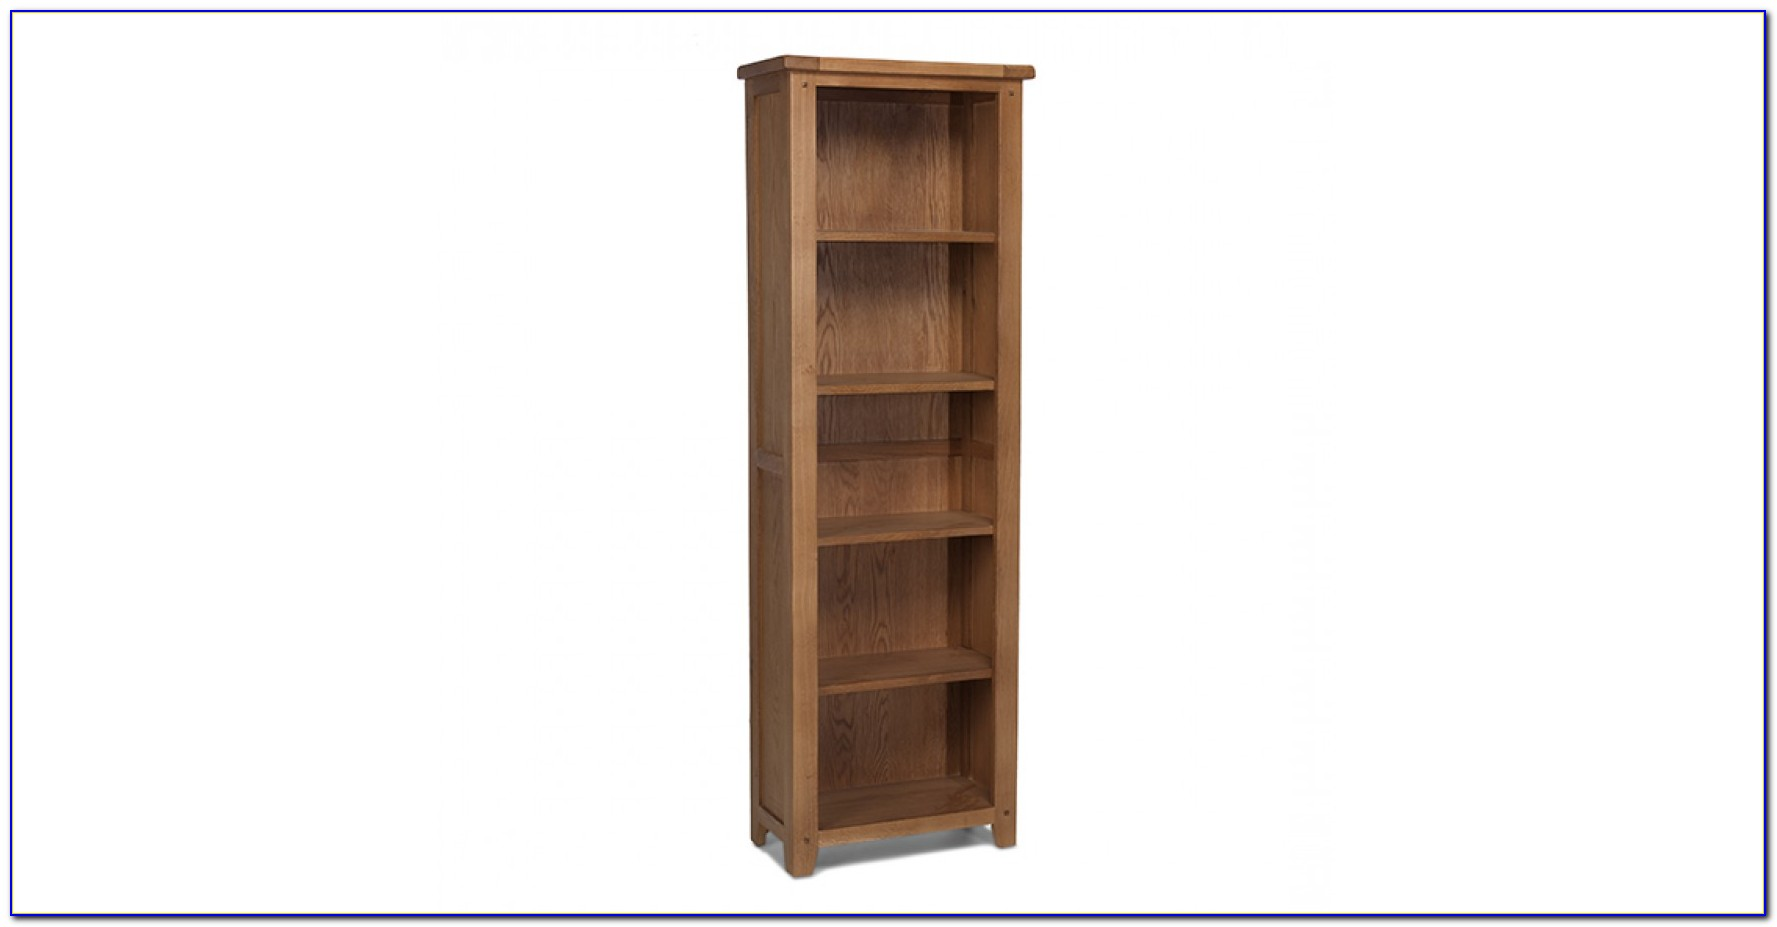 Tall Slim Bookshelf